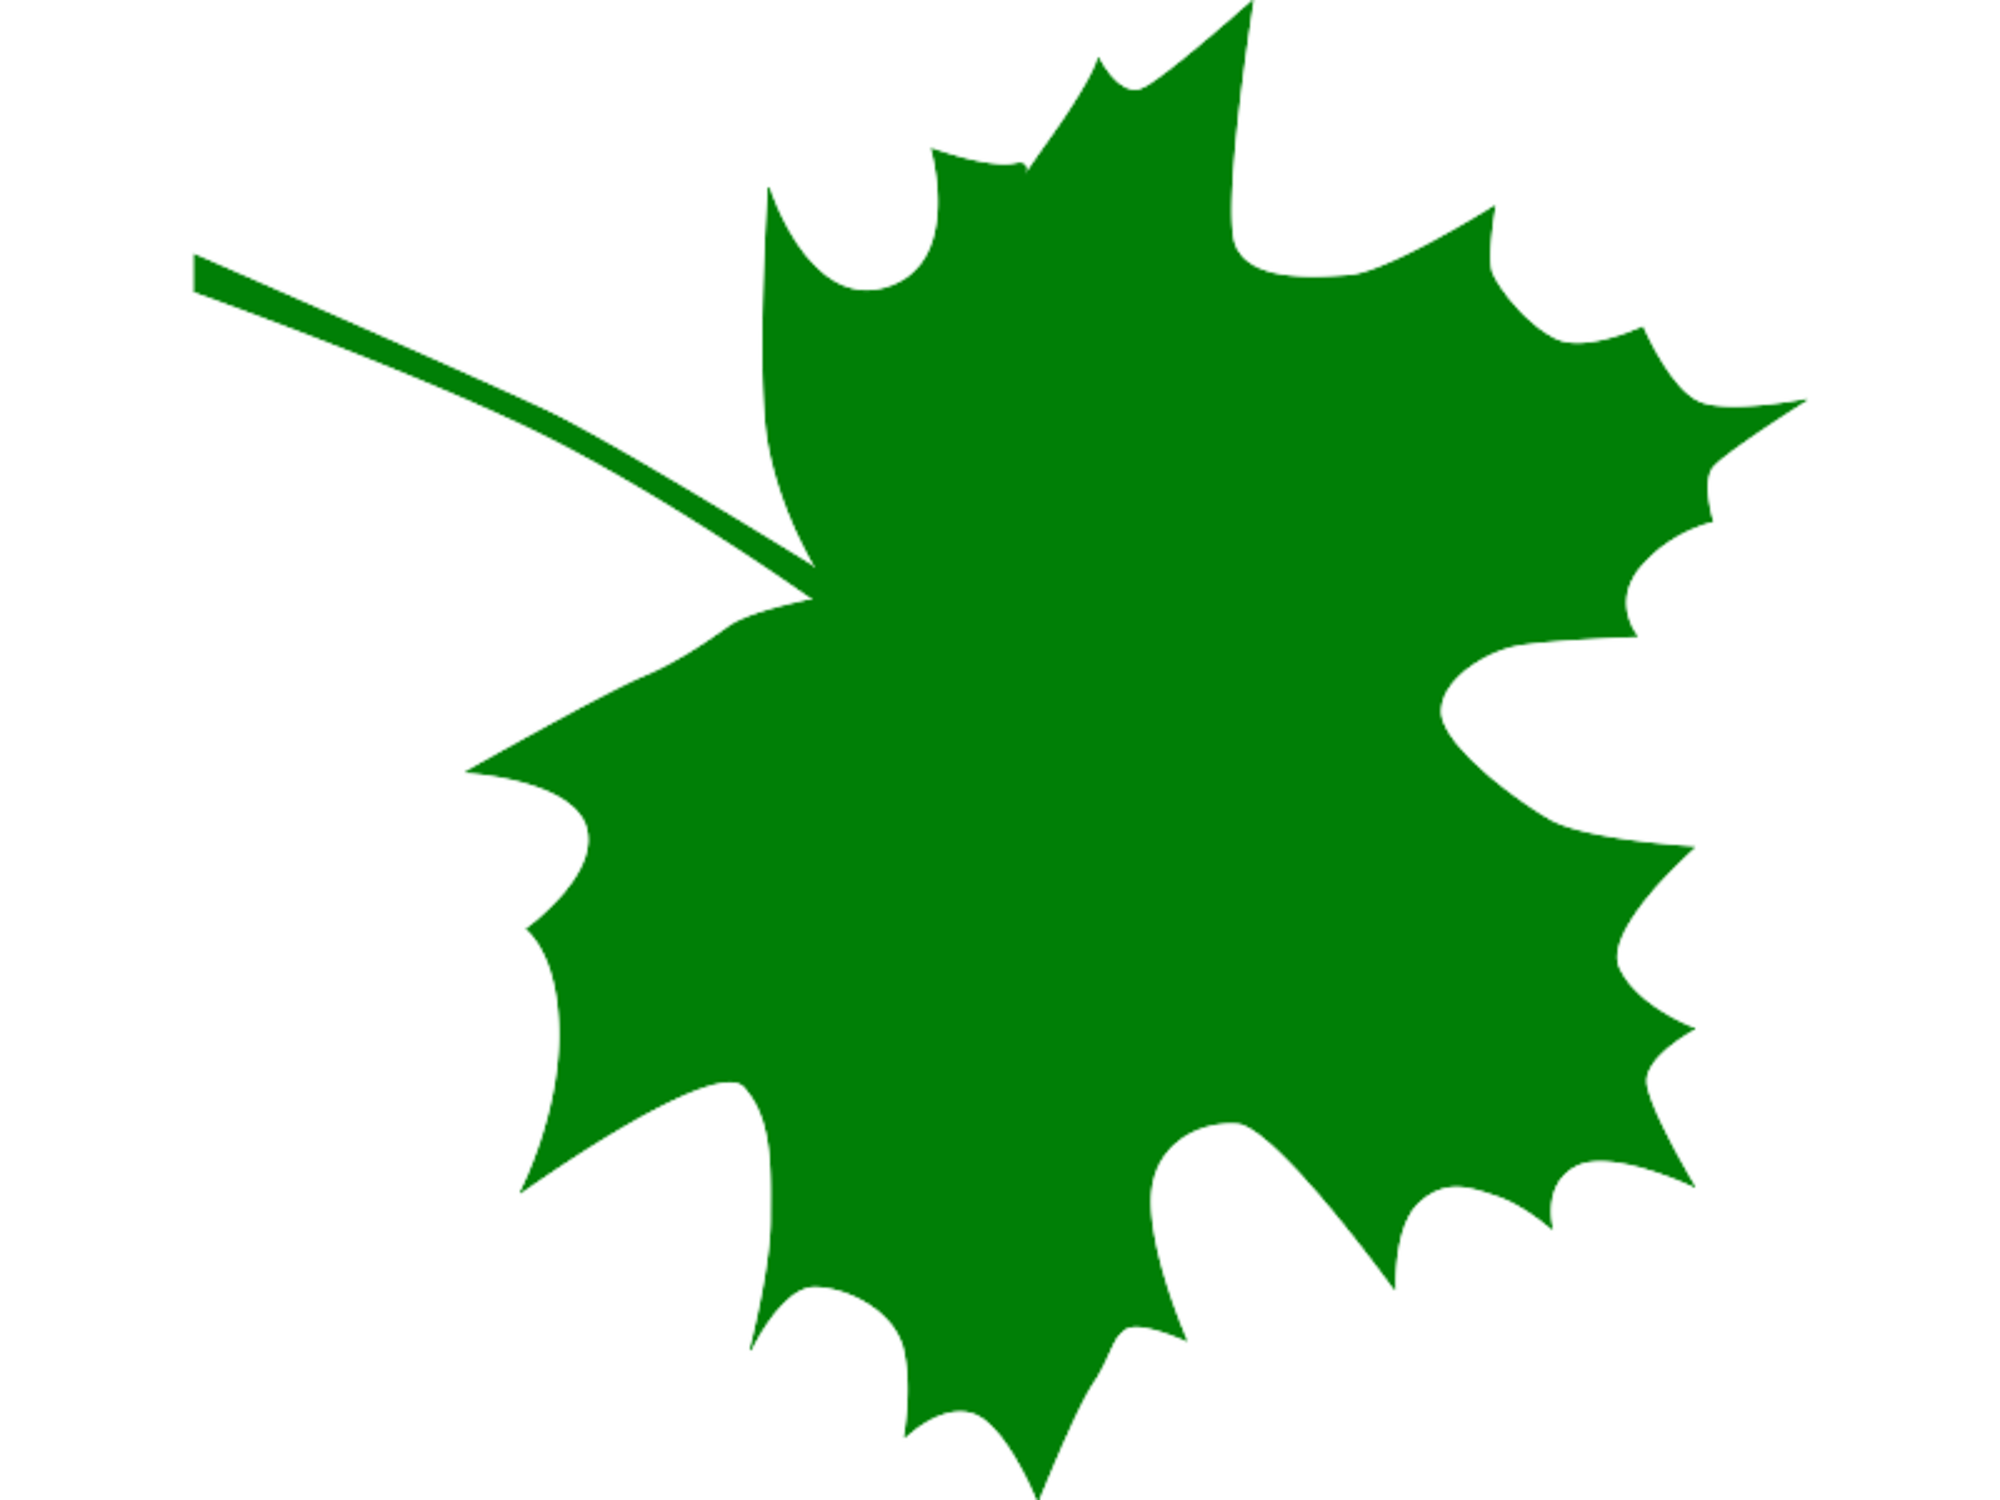 2000x1500 Sugar maple leaf clipart kid